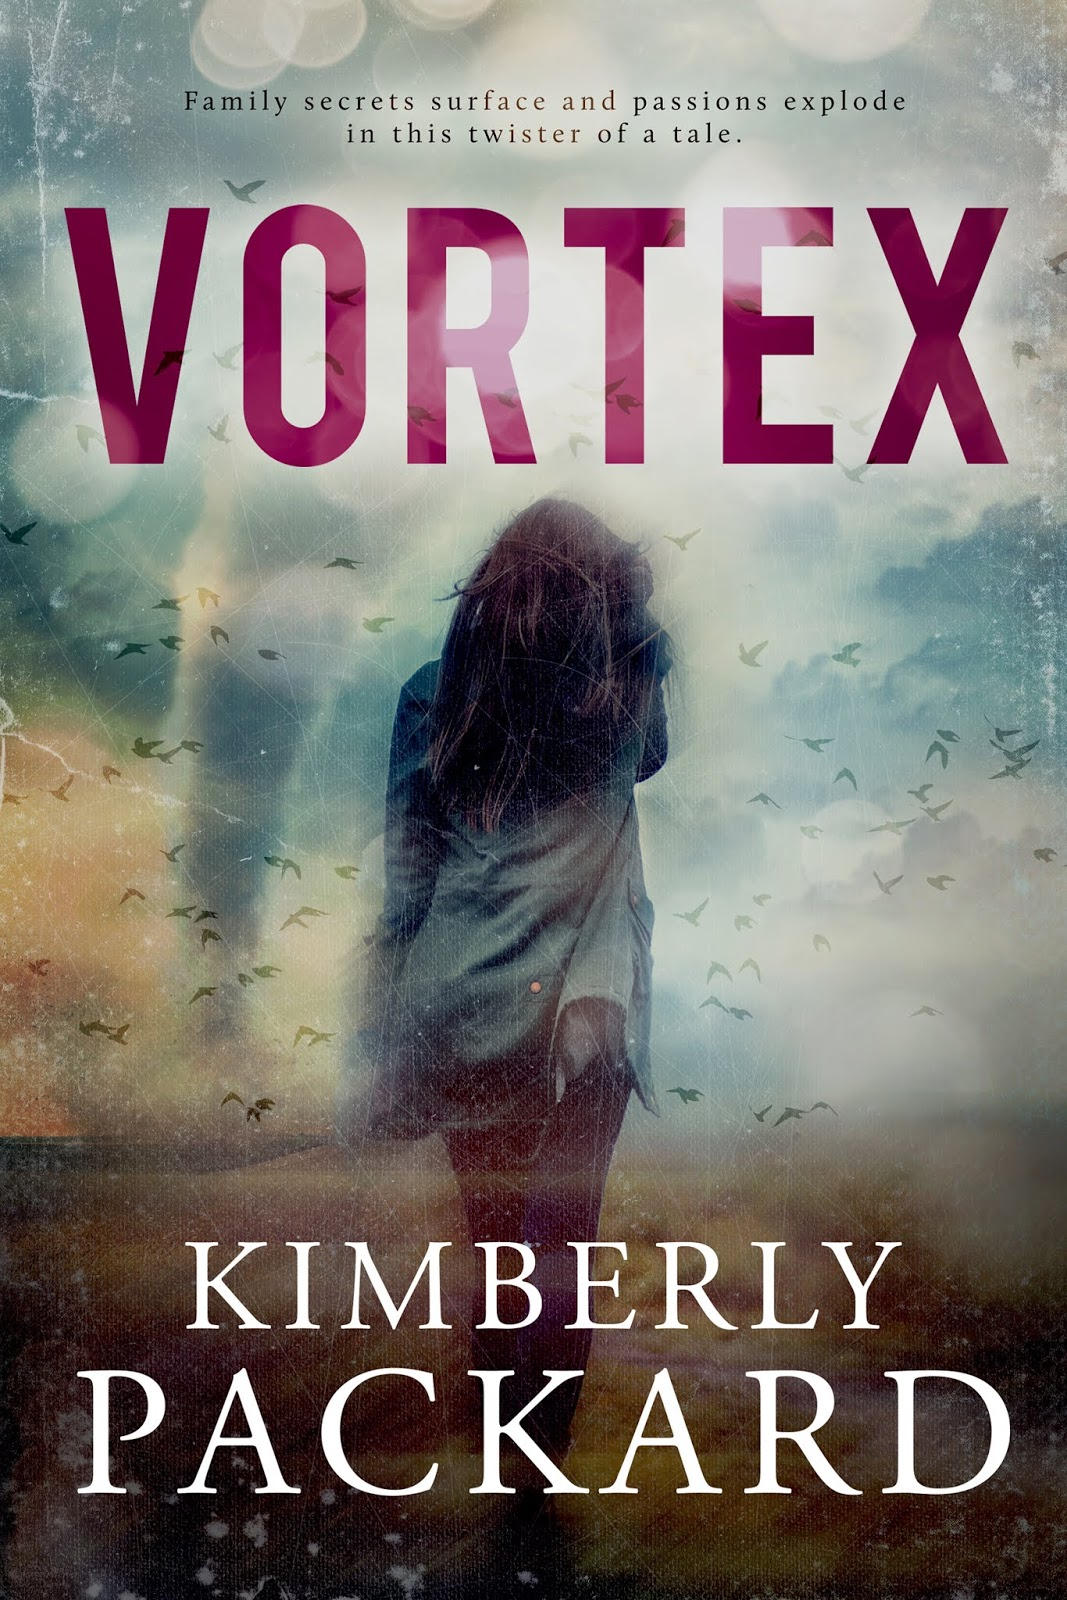 Vortex book cover